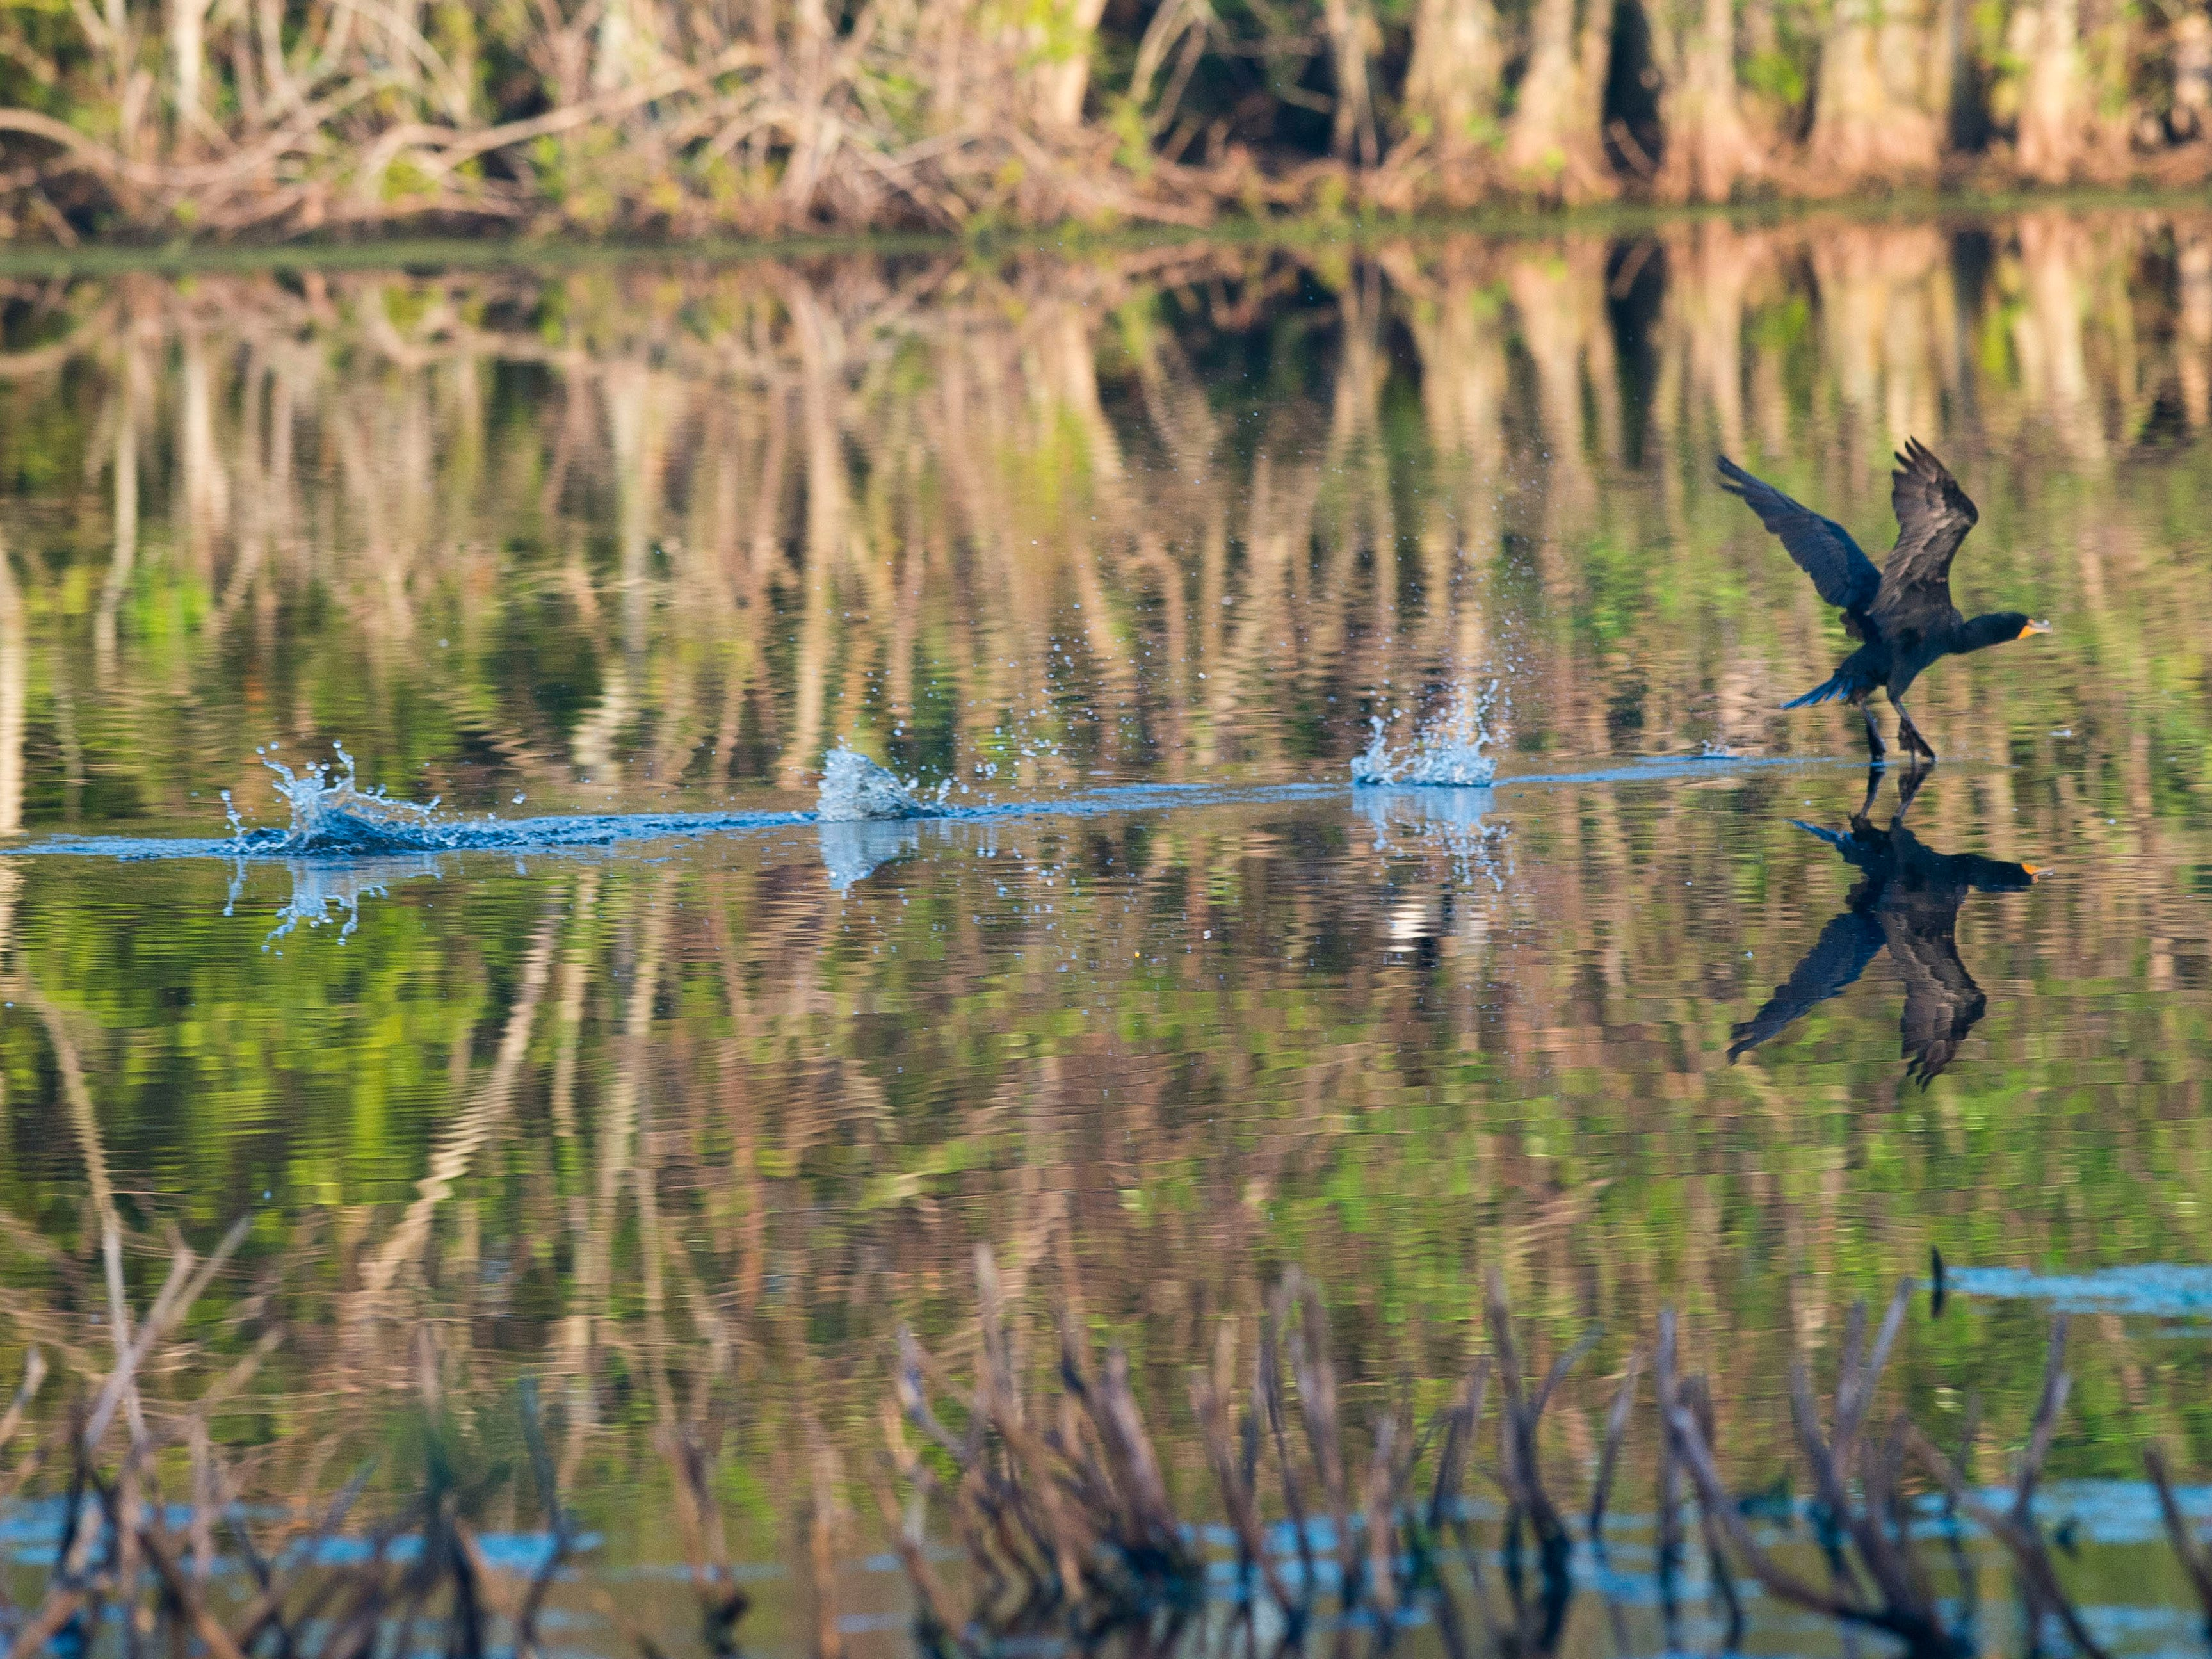 """A cormorant skids across the water Feb. 28, 2018 in one of the natural wetlands at Harbour Ridge Yacht & Country Club north of Palm City in St. Lucie County. Despite the wetlands beings surrounded by homes, several species of birds make the space their home. """"Harbour Ridge is a great example of coexisting with the environment,"""" said Tim Cann, director of greens and ground maintenance."""